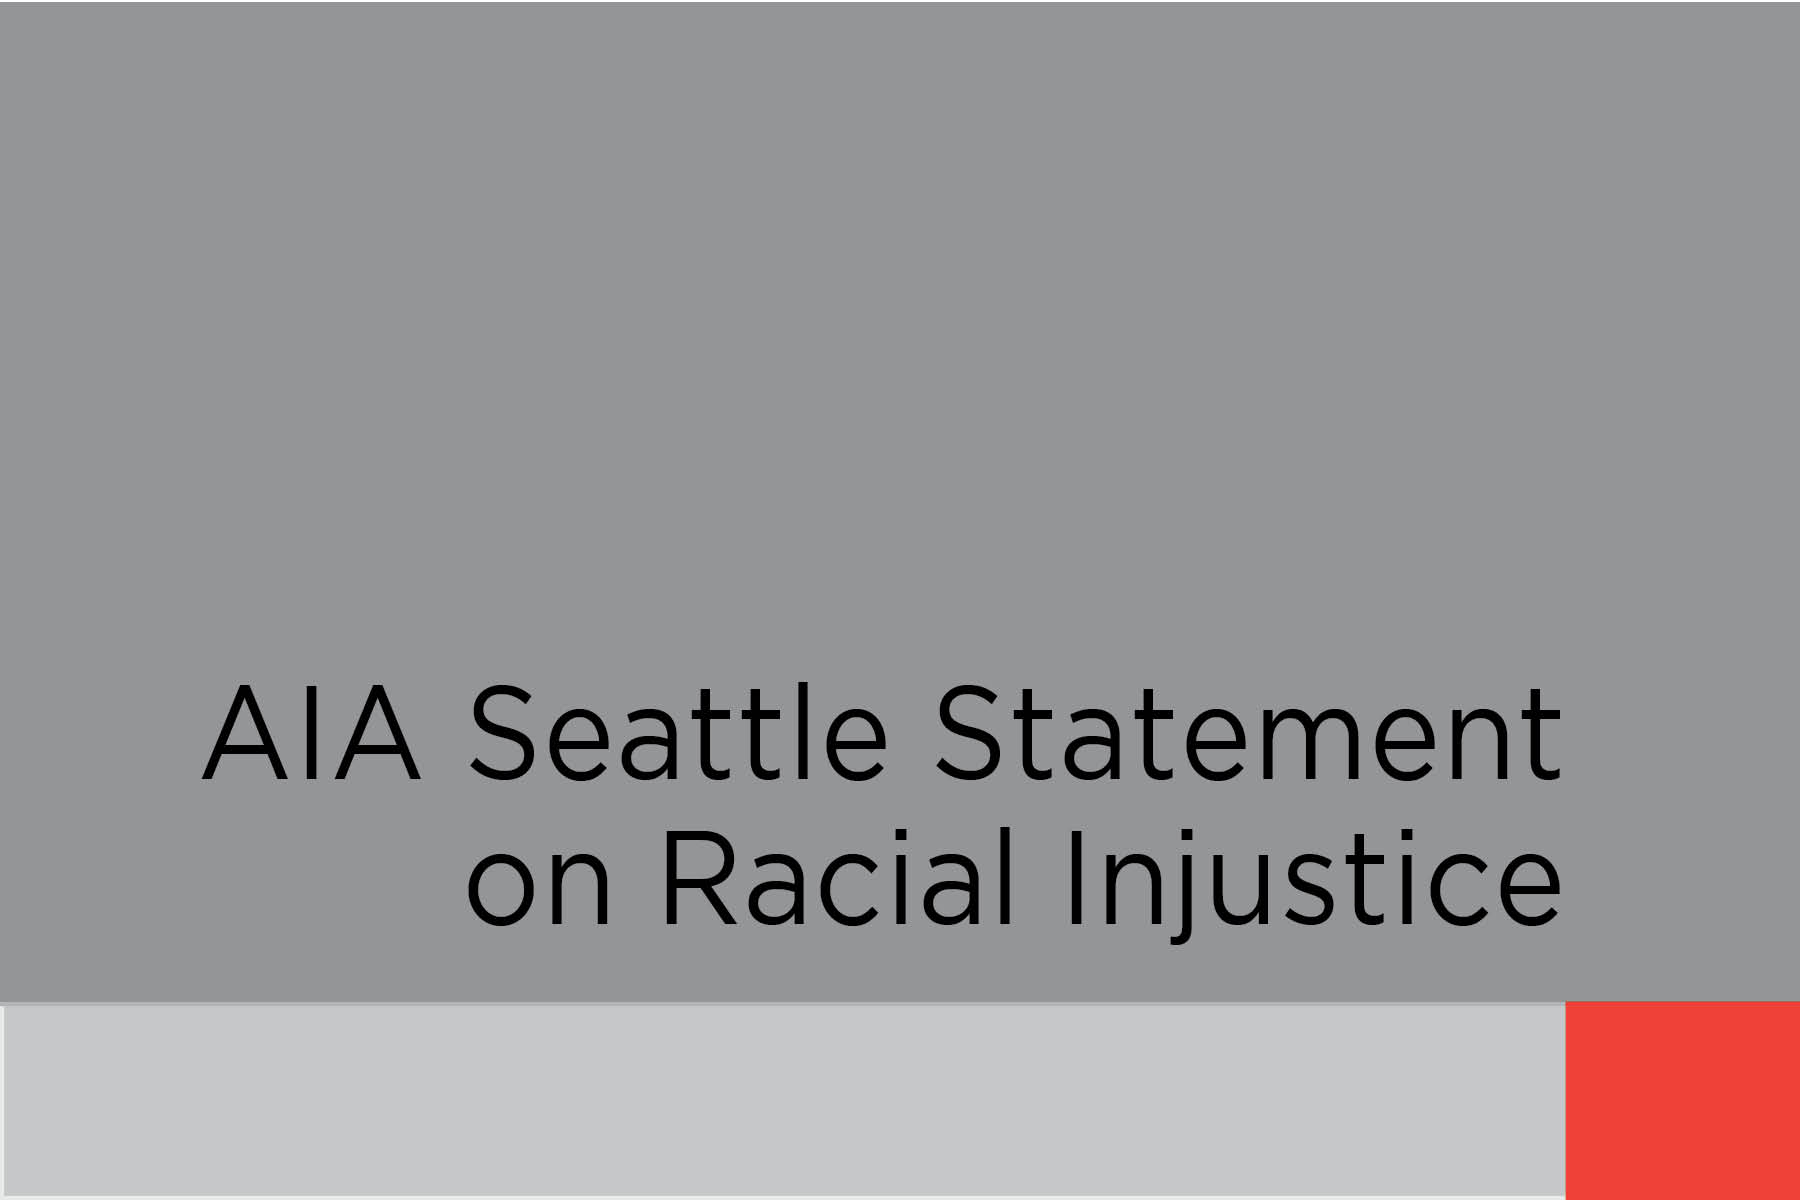 AIA Seattle Racial Injustice Statement